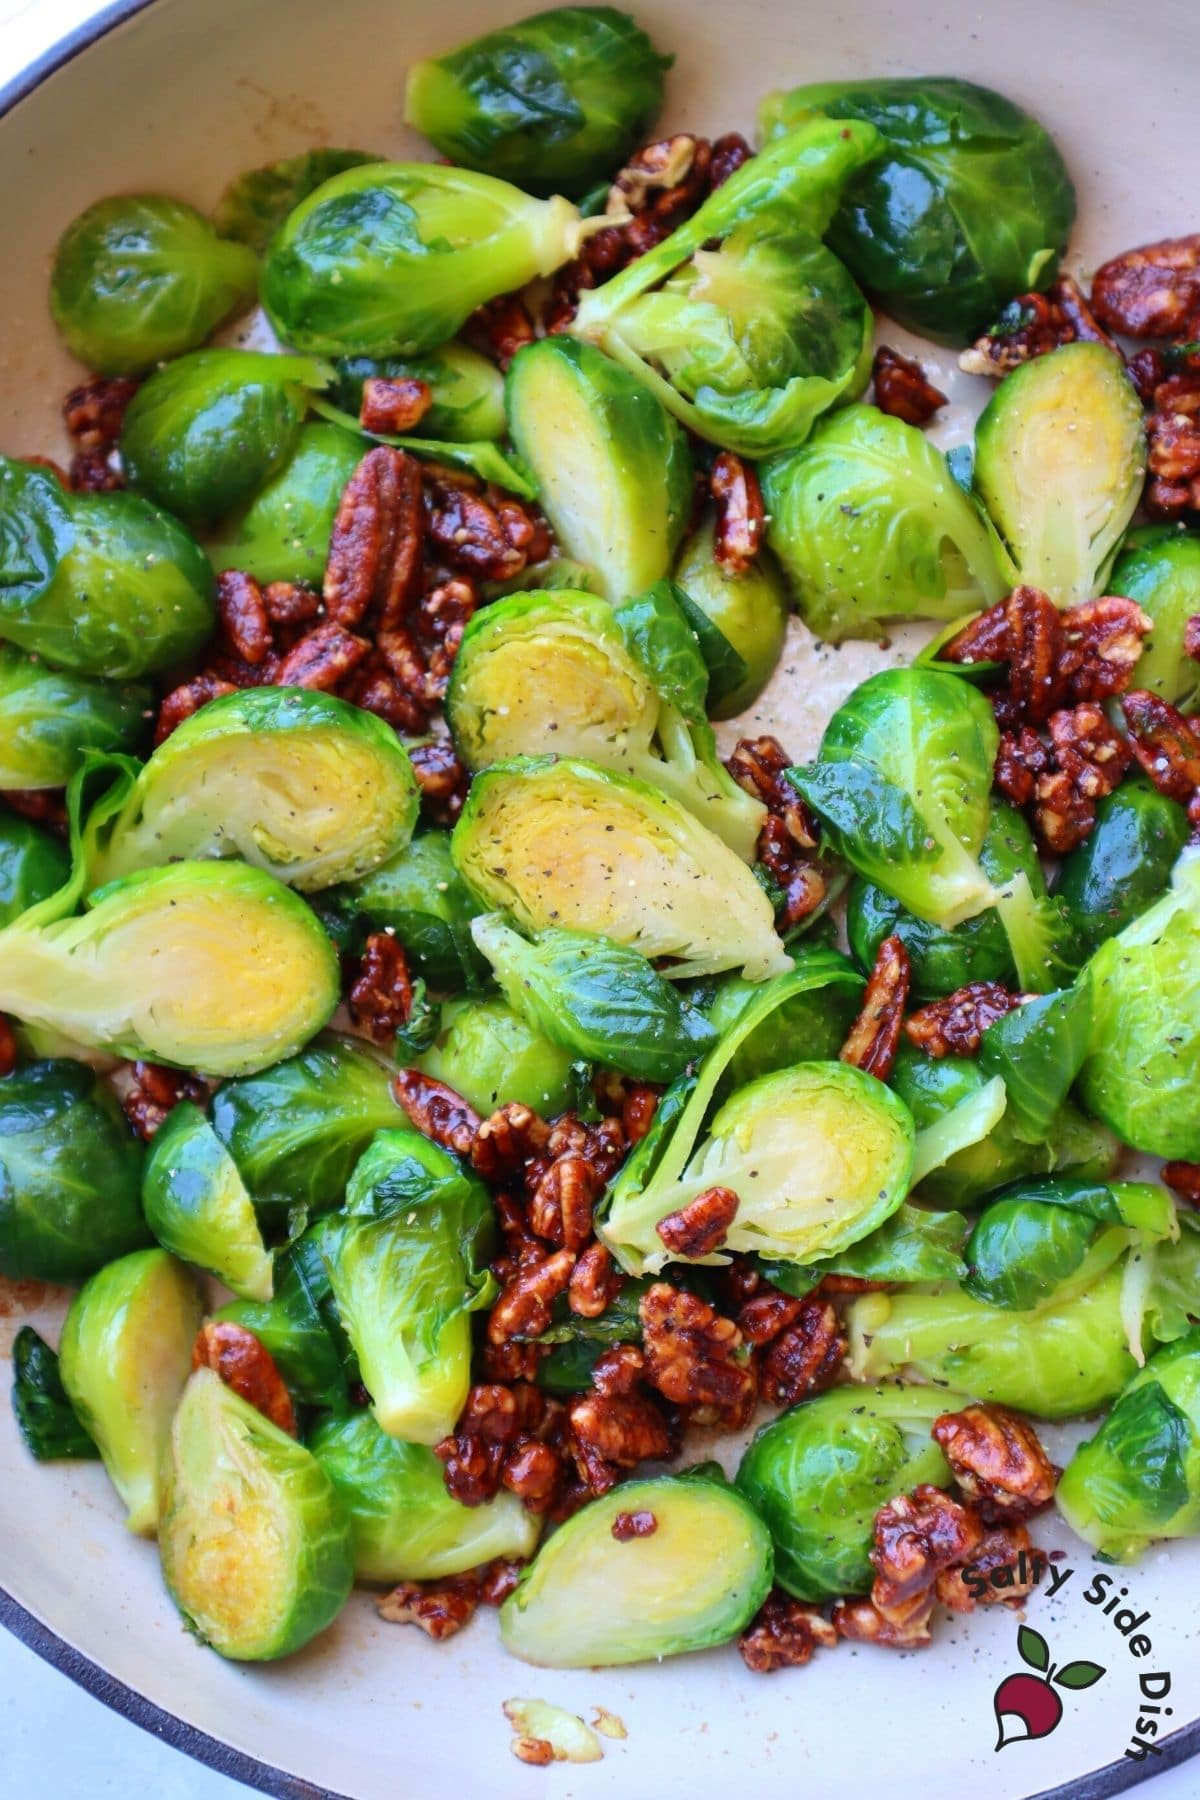 brussels sprouts in a dish with cranberries